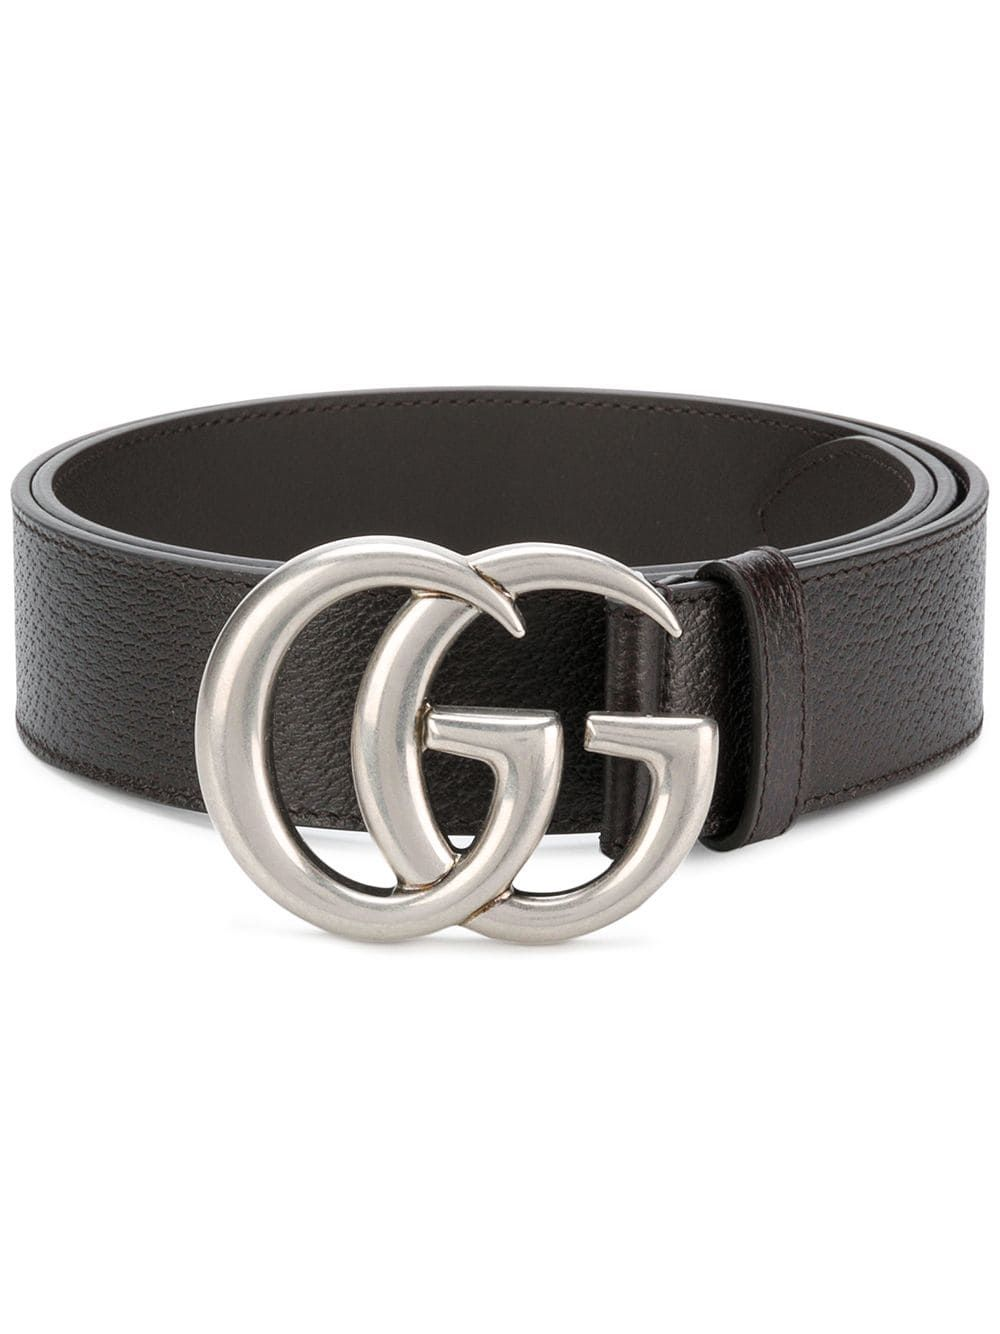 f63b729b5 Gucci Leather belt with double G buckle - Brown in 2019 | Products ...